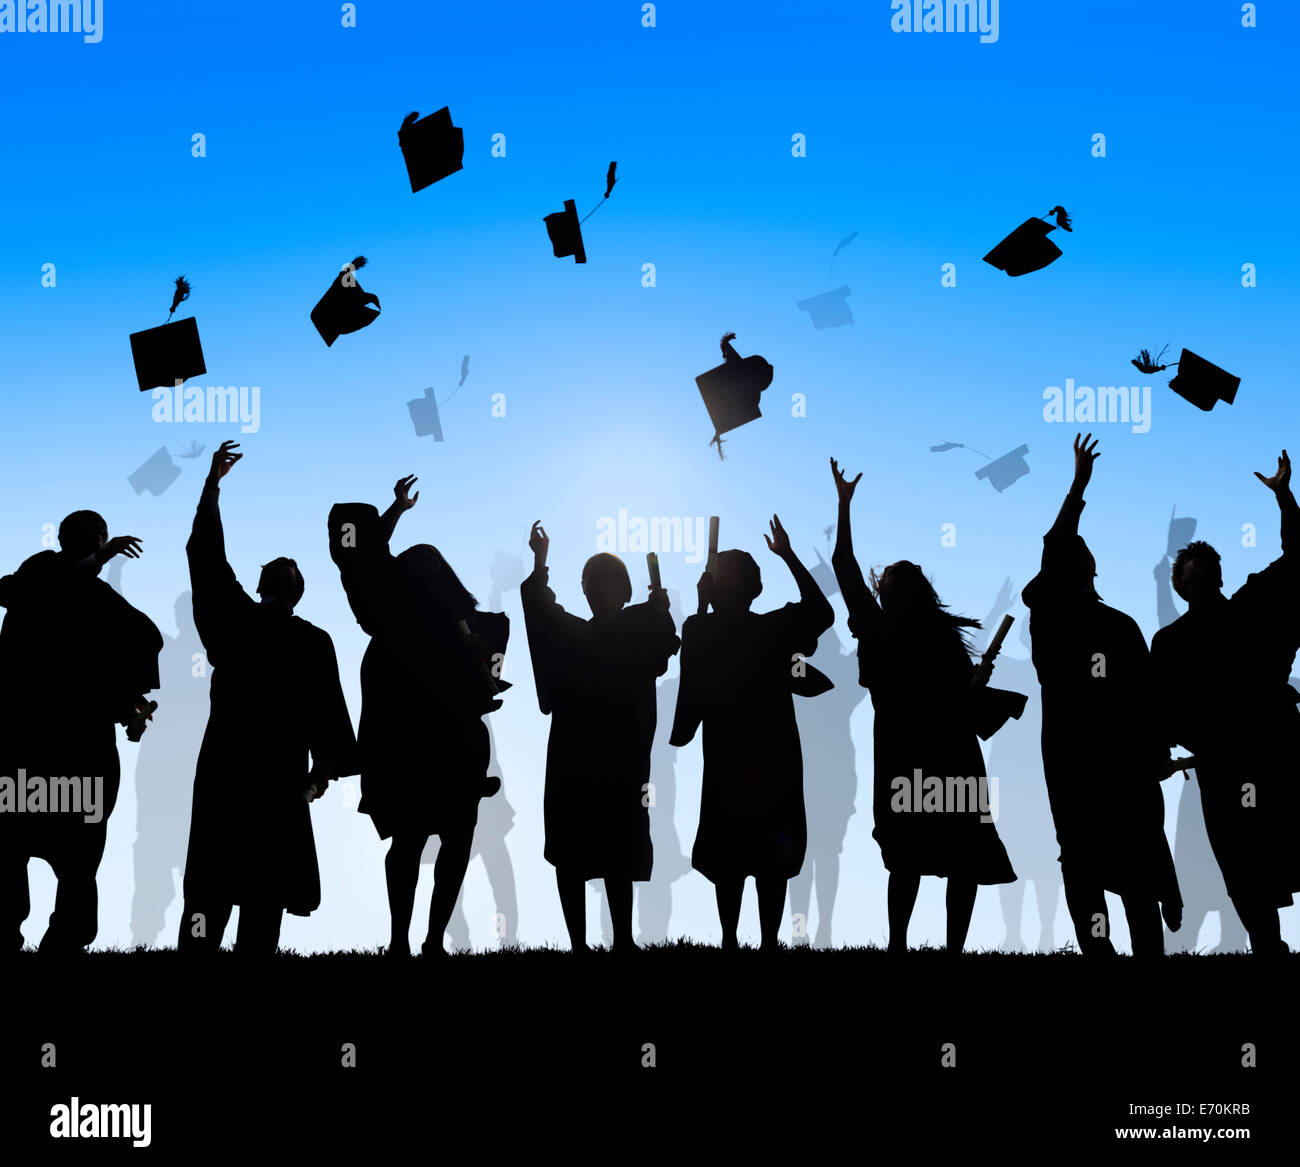 Group Of Diverse International Students Celebrating Graduation - Stock Image